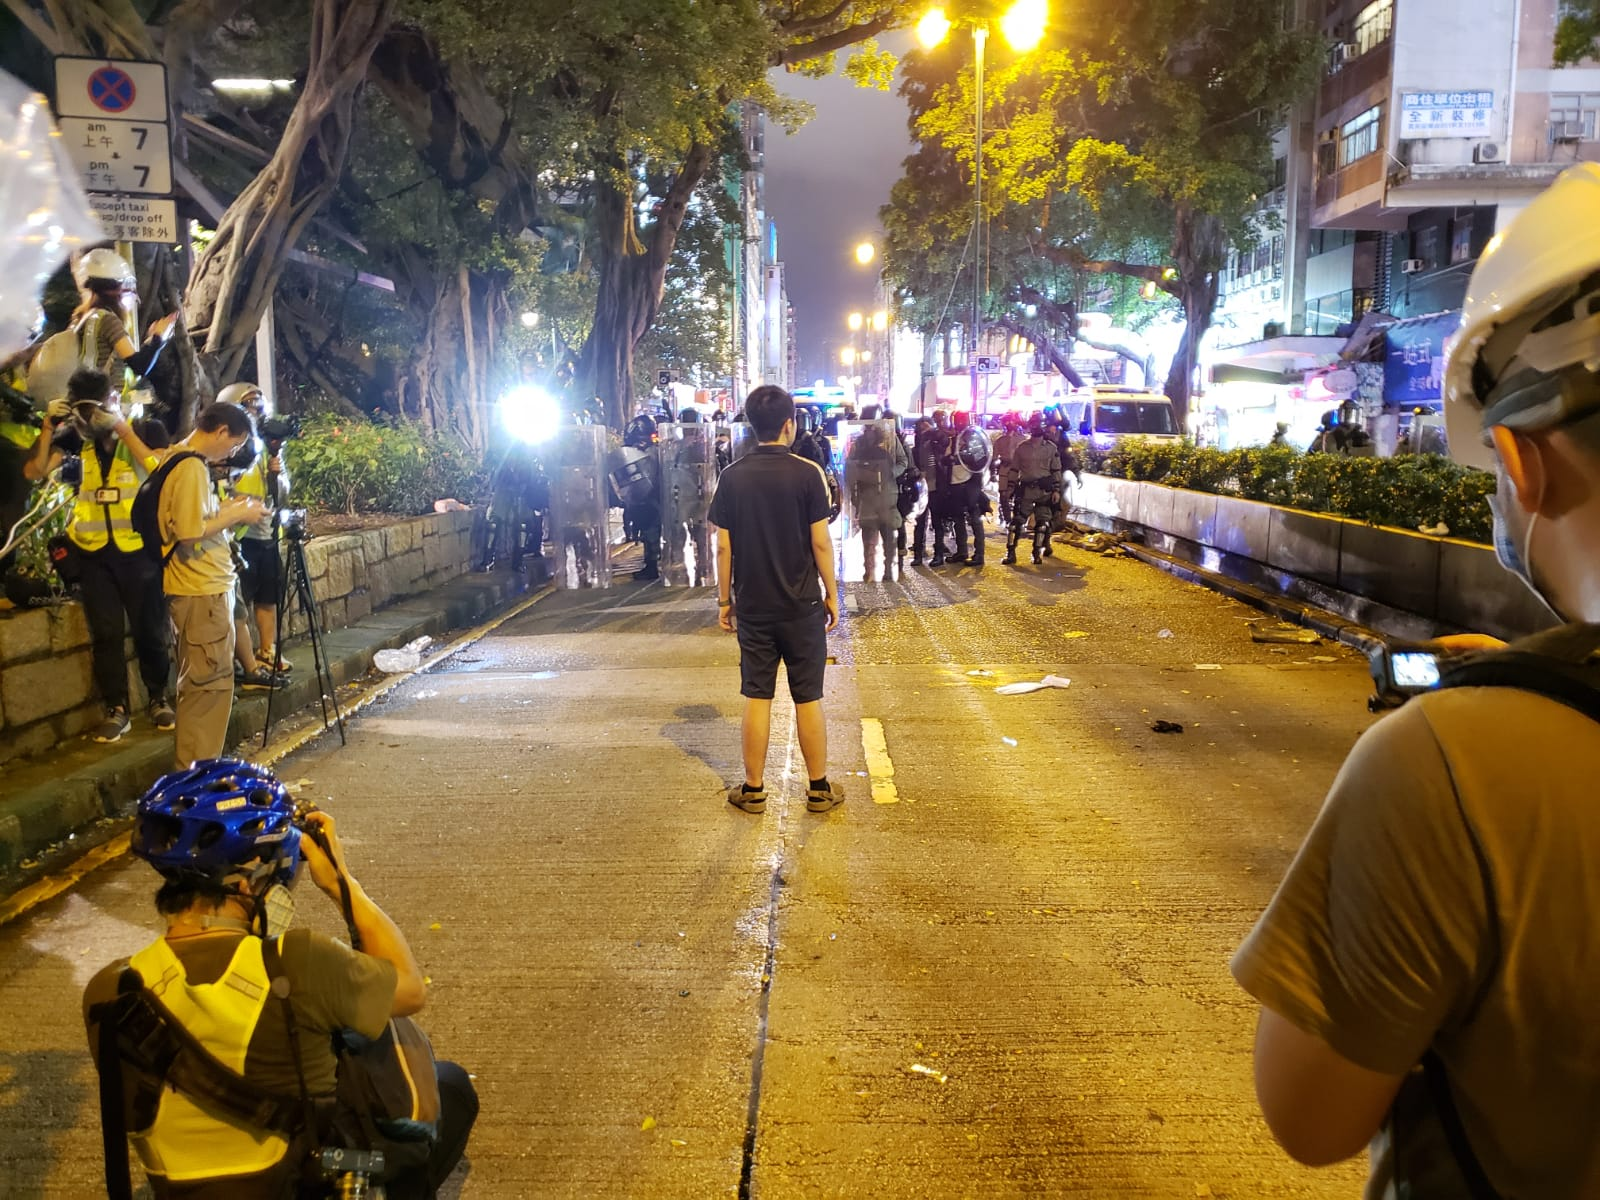 Democratic politician Ted Hui stands before the police in Kowloon.